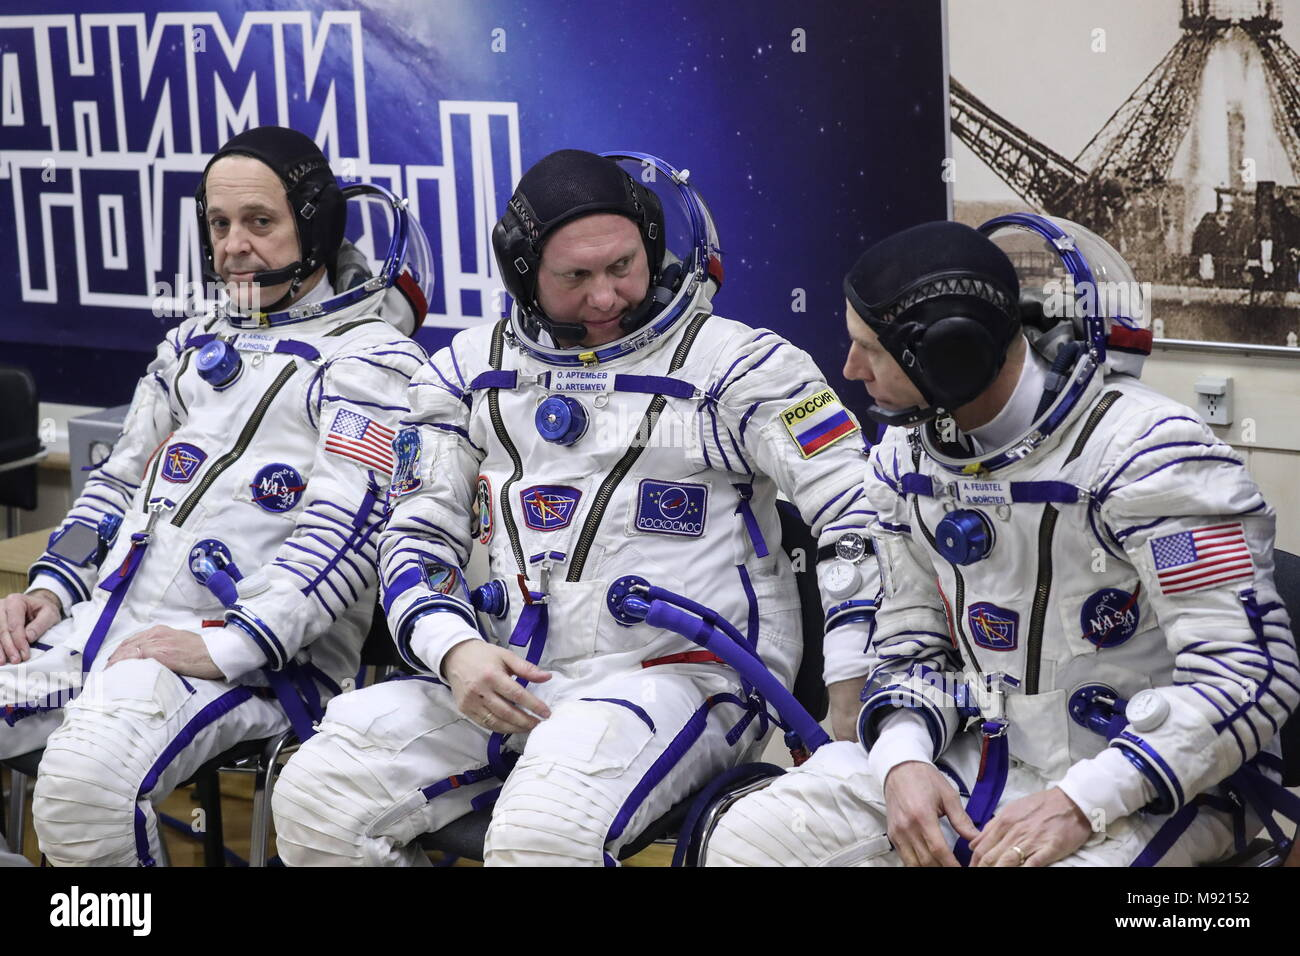 Baikonur Cosmodrome, Kazakhstan. 21st Mar, 2018. BAIKONUR, KAZAKHSTAN - MARCH 21, 2018: ISS Expedition 55/56 main crew members, NASA astronaut Richard Arnold, Roscosmos cosmonaut Oleg Artemyev, and NASA astronaut Andrew J. Feustel (L-R) in spacesuits before a launch to the International Space Station. The launch of a Soyuz-FG rocket booster carrying the Soyuz MS-08 spacecraft to the ISS from the Baikonur Cosmodrome is scheduled for March 21, 2018 at 20:44 Moscow time. Sergei Savostyanov/TASS Credit: ITAR-TASS News Agency/Alamy Live News - Stock Image